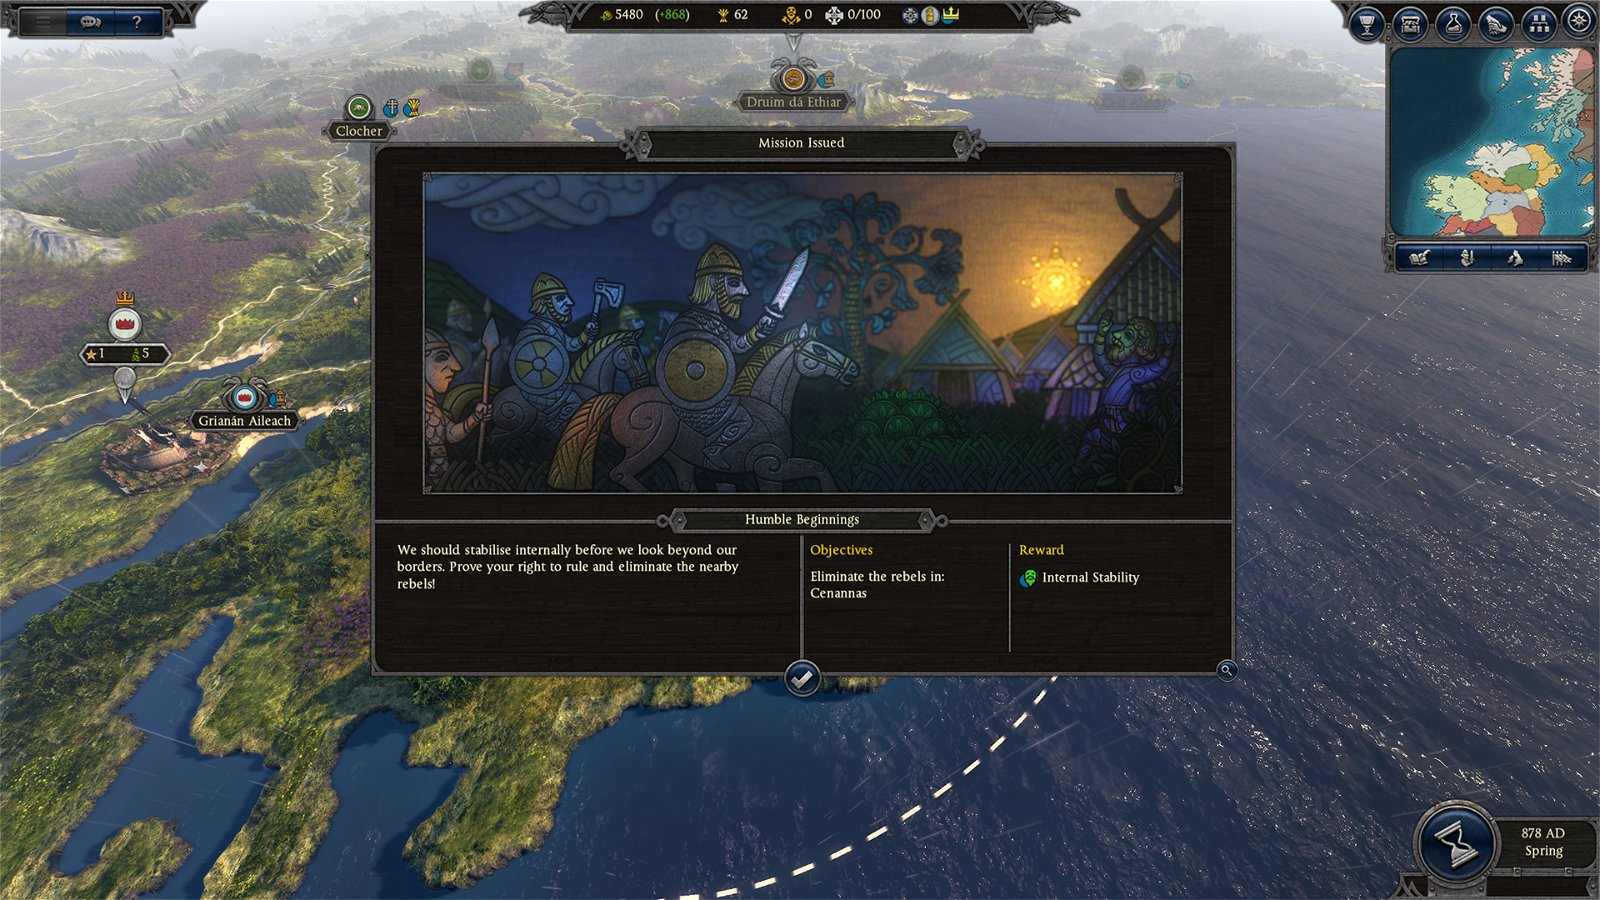 The British Isles are the Most Detailed Map to Date in Total War Saga: Thrones of Britannia